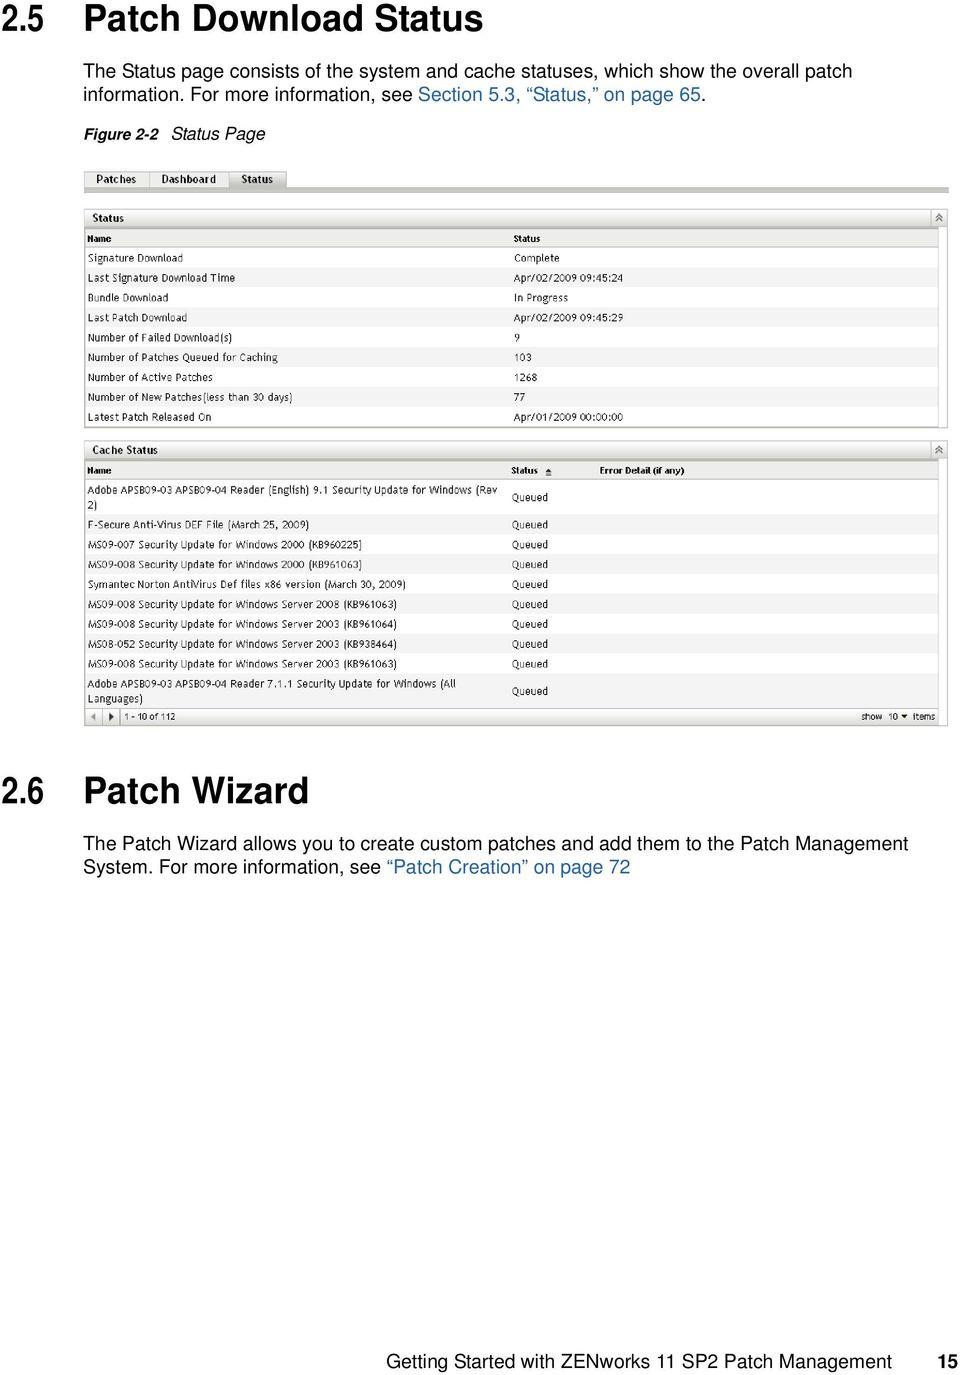 6 Patch Wizard The Patch Wizard allows you to create custom patches and add them to the Patch Management